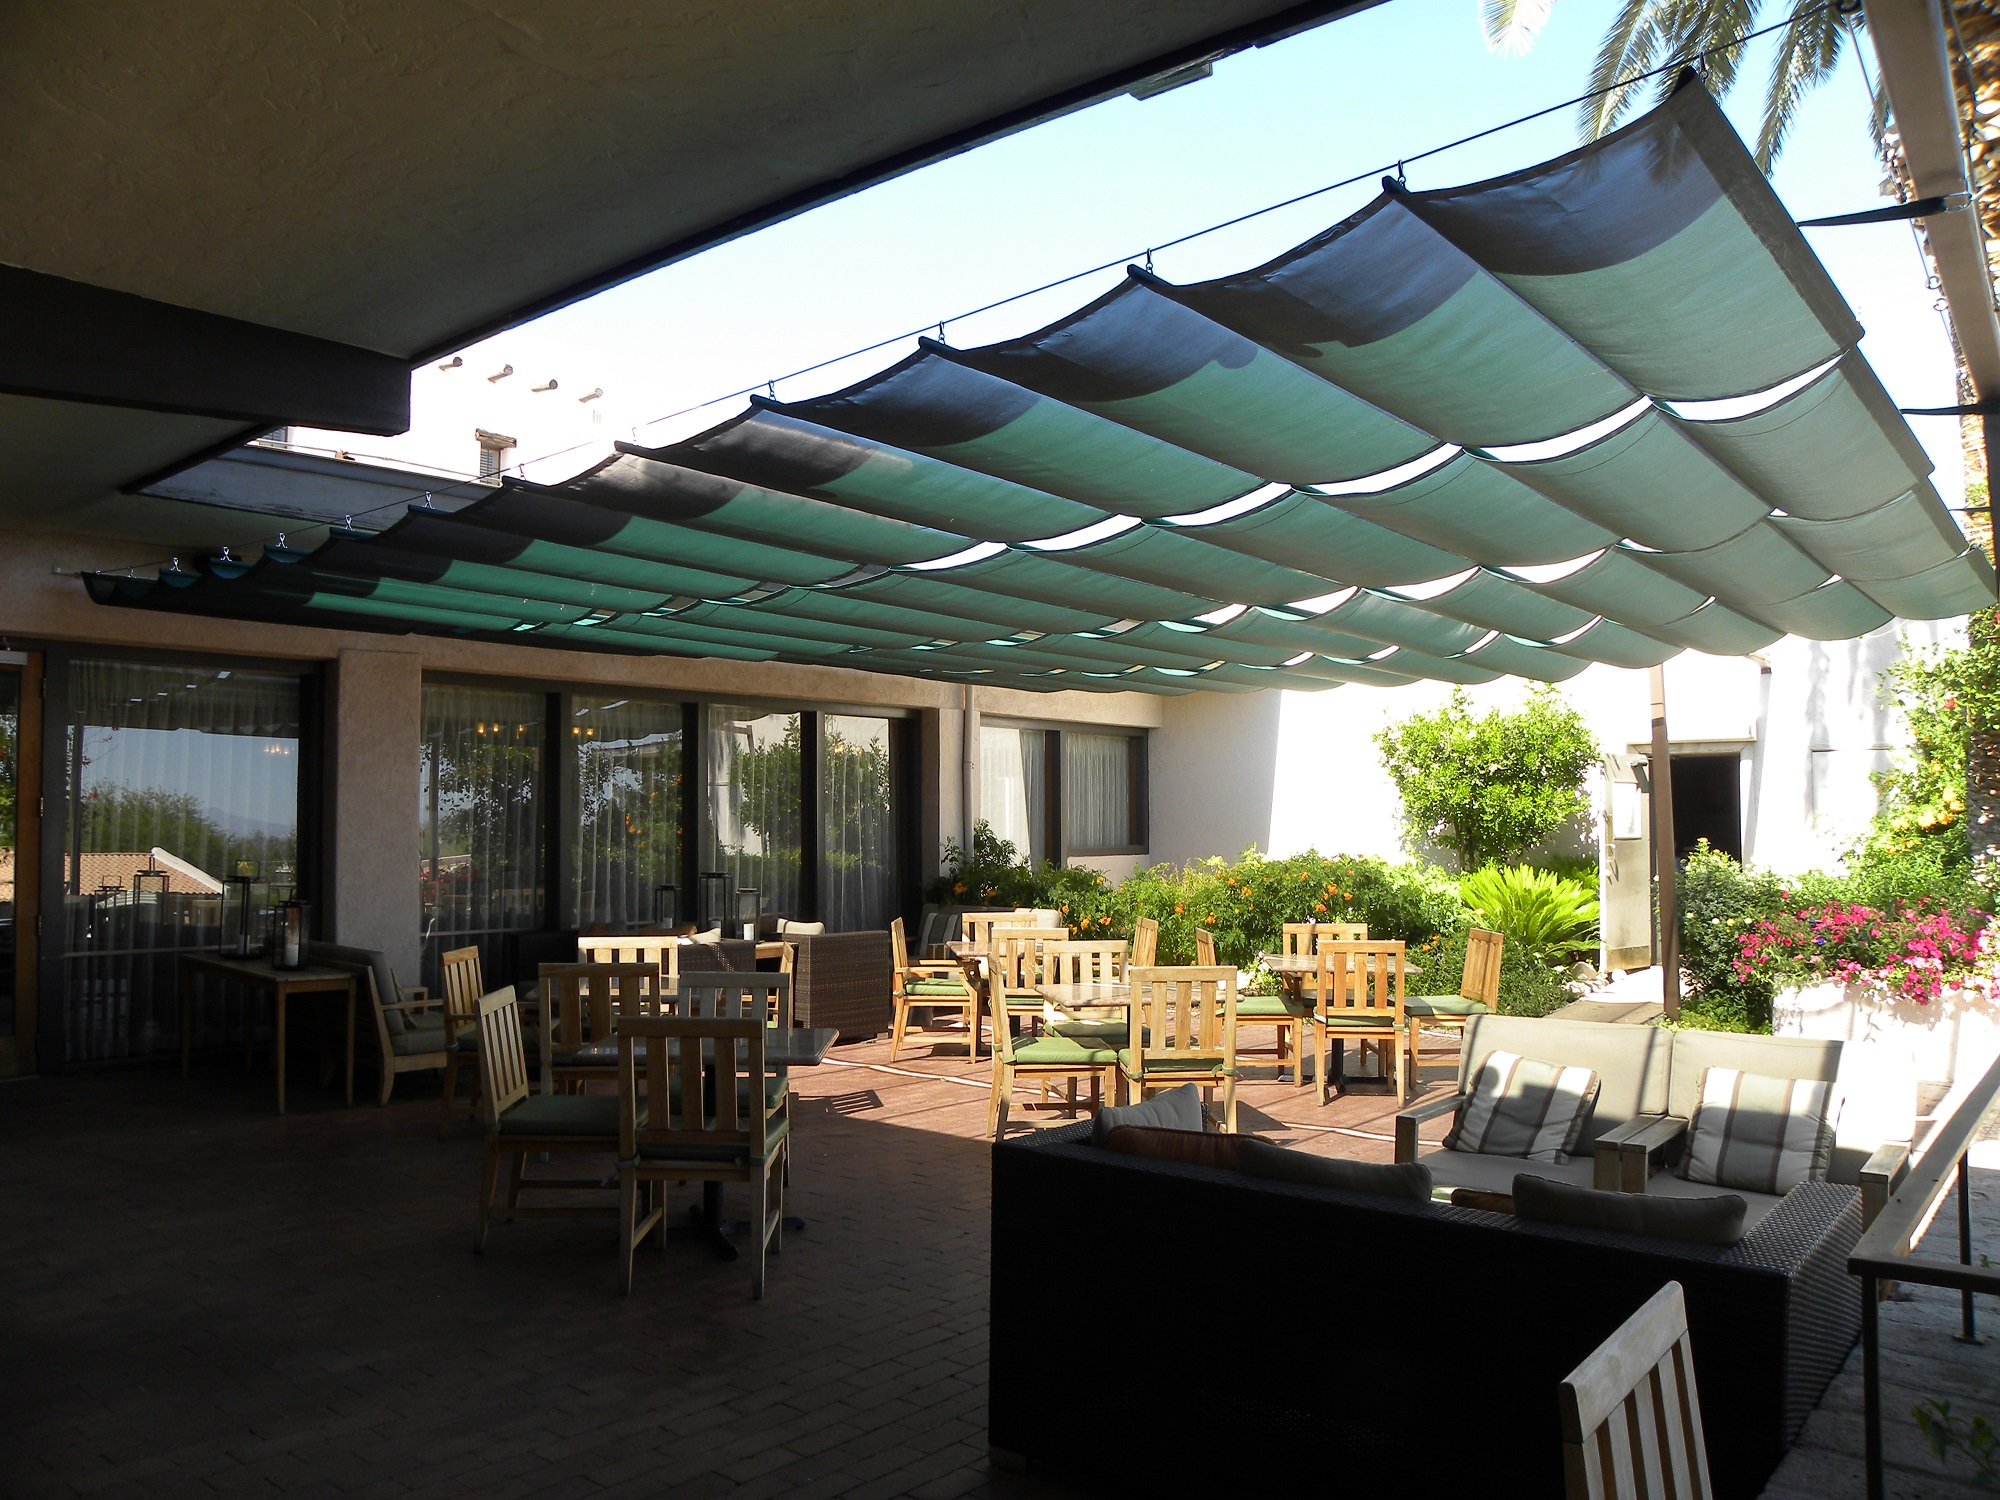 Tucson Commercial Retractable Awnings Air And Sun Shade